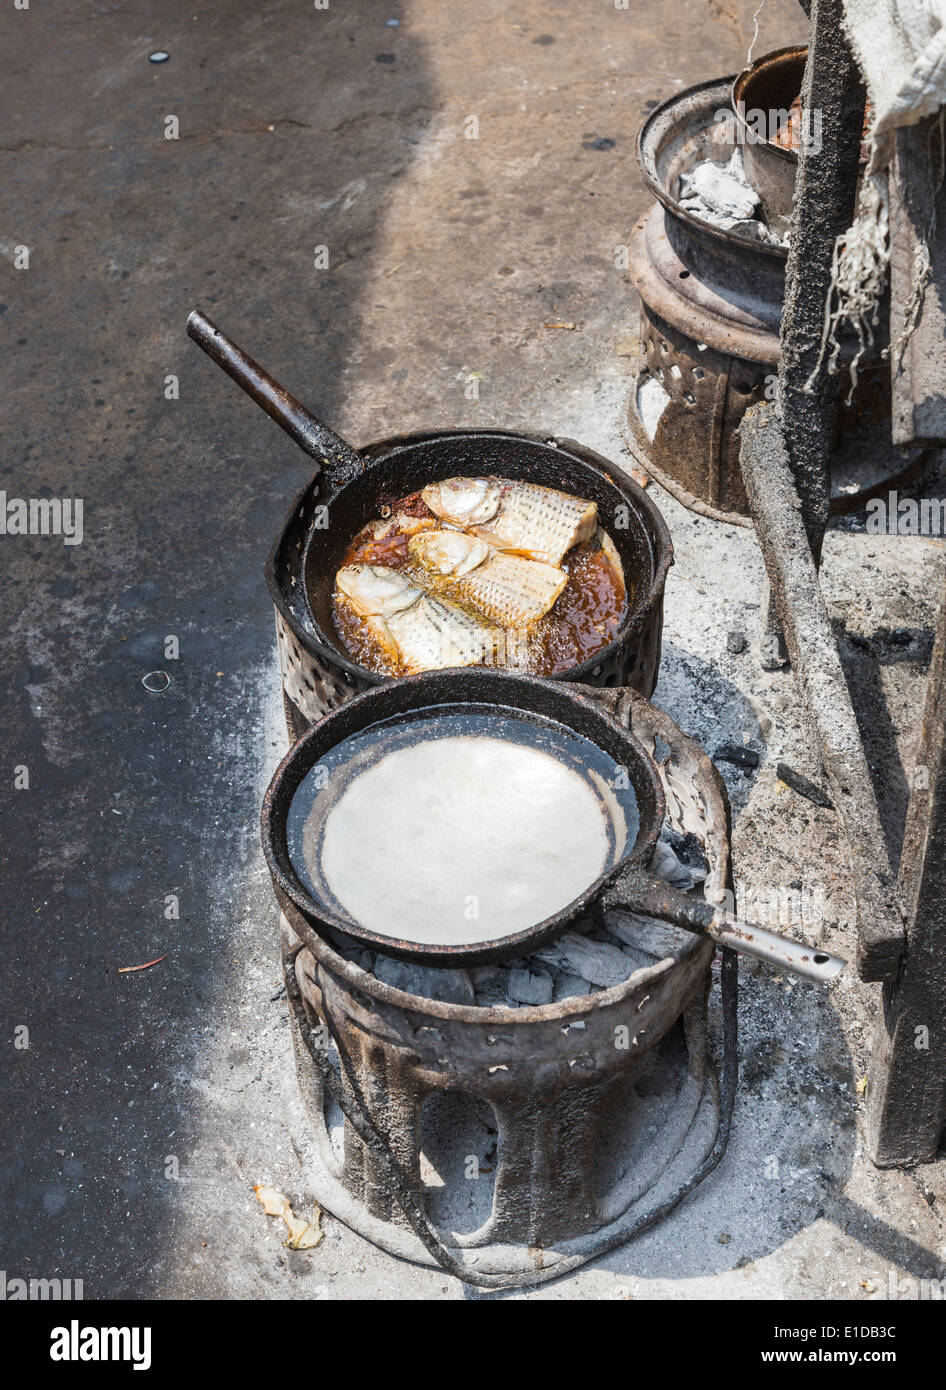 Fish heads cooking and water boiling in blackened frying pans in a charcoal brazier in Maramba Market, Livingstone, Zambia - Stock Image